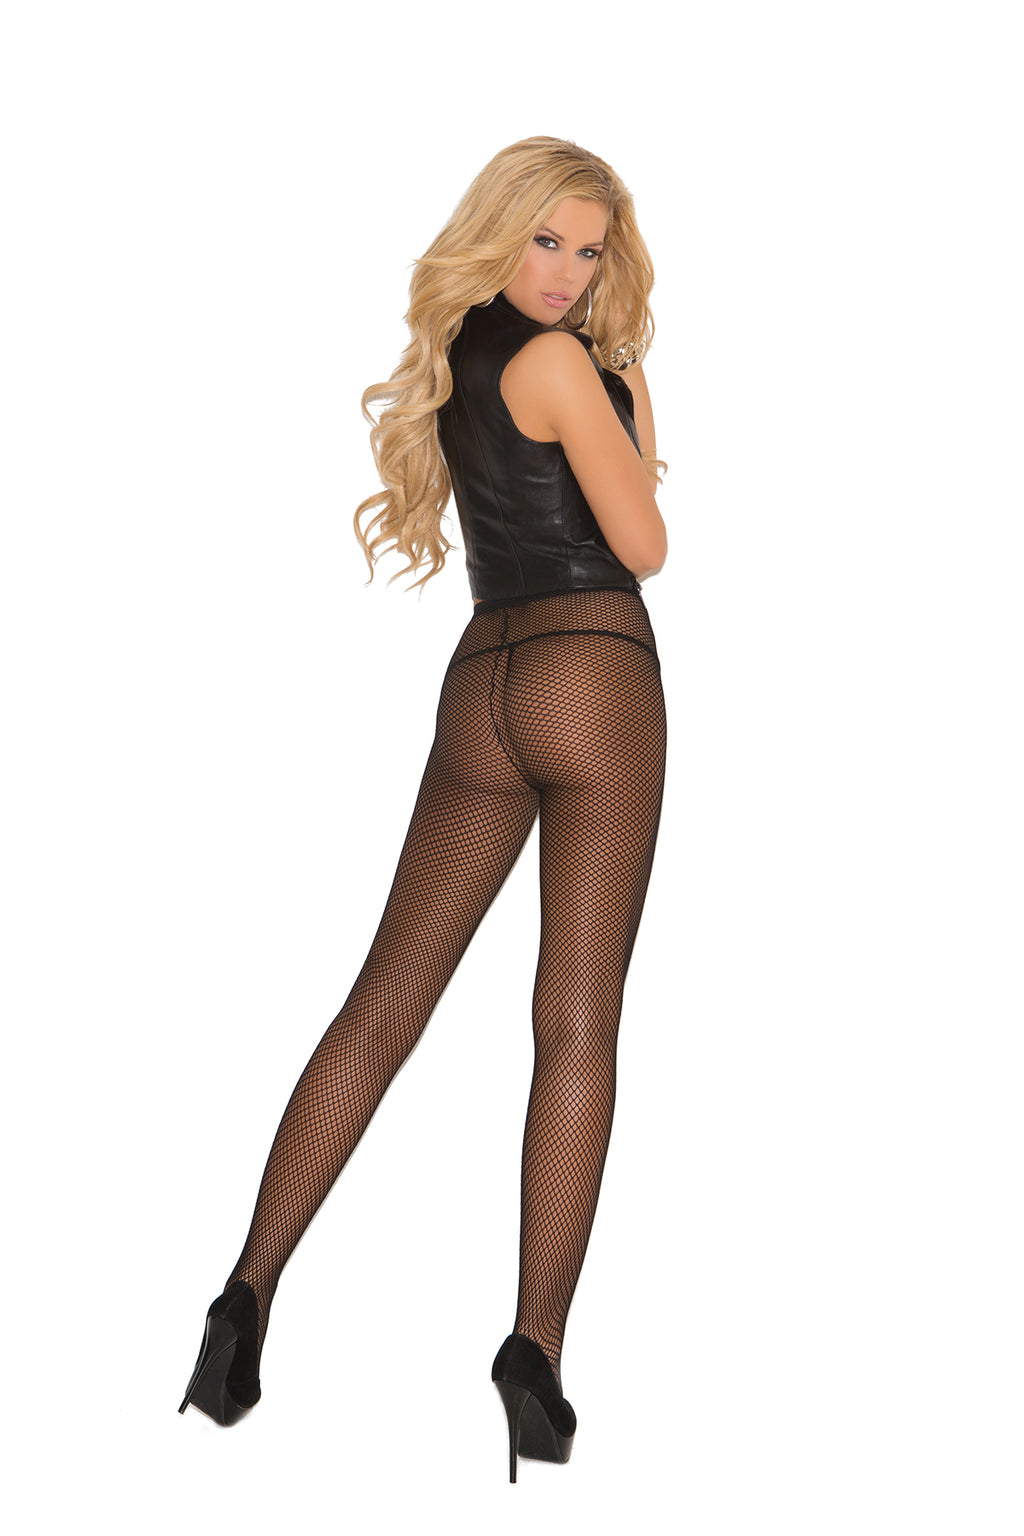 Elegant Moments 1733 Black Fishnet Tights